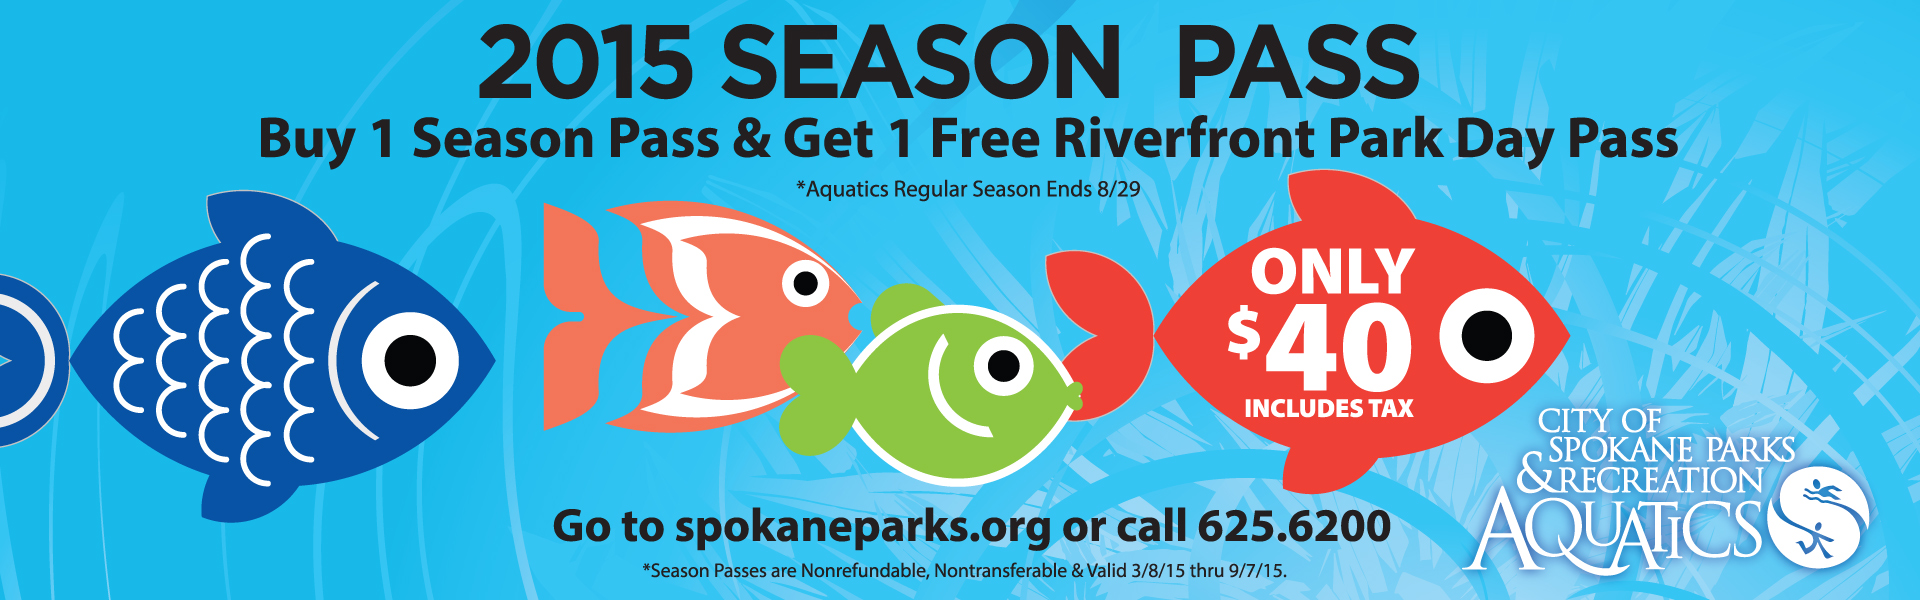 Aquatics Season Pass 2015